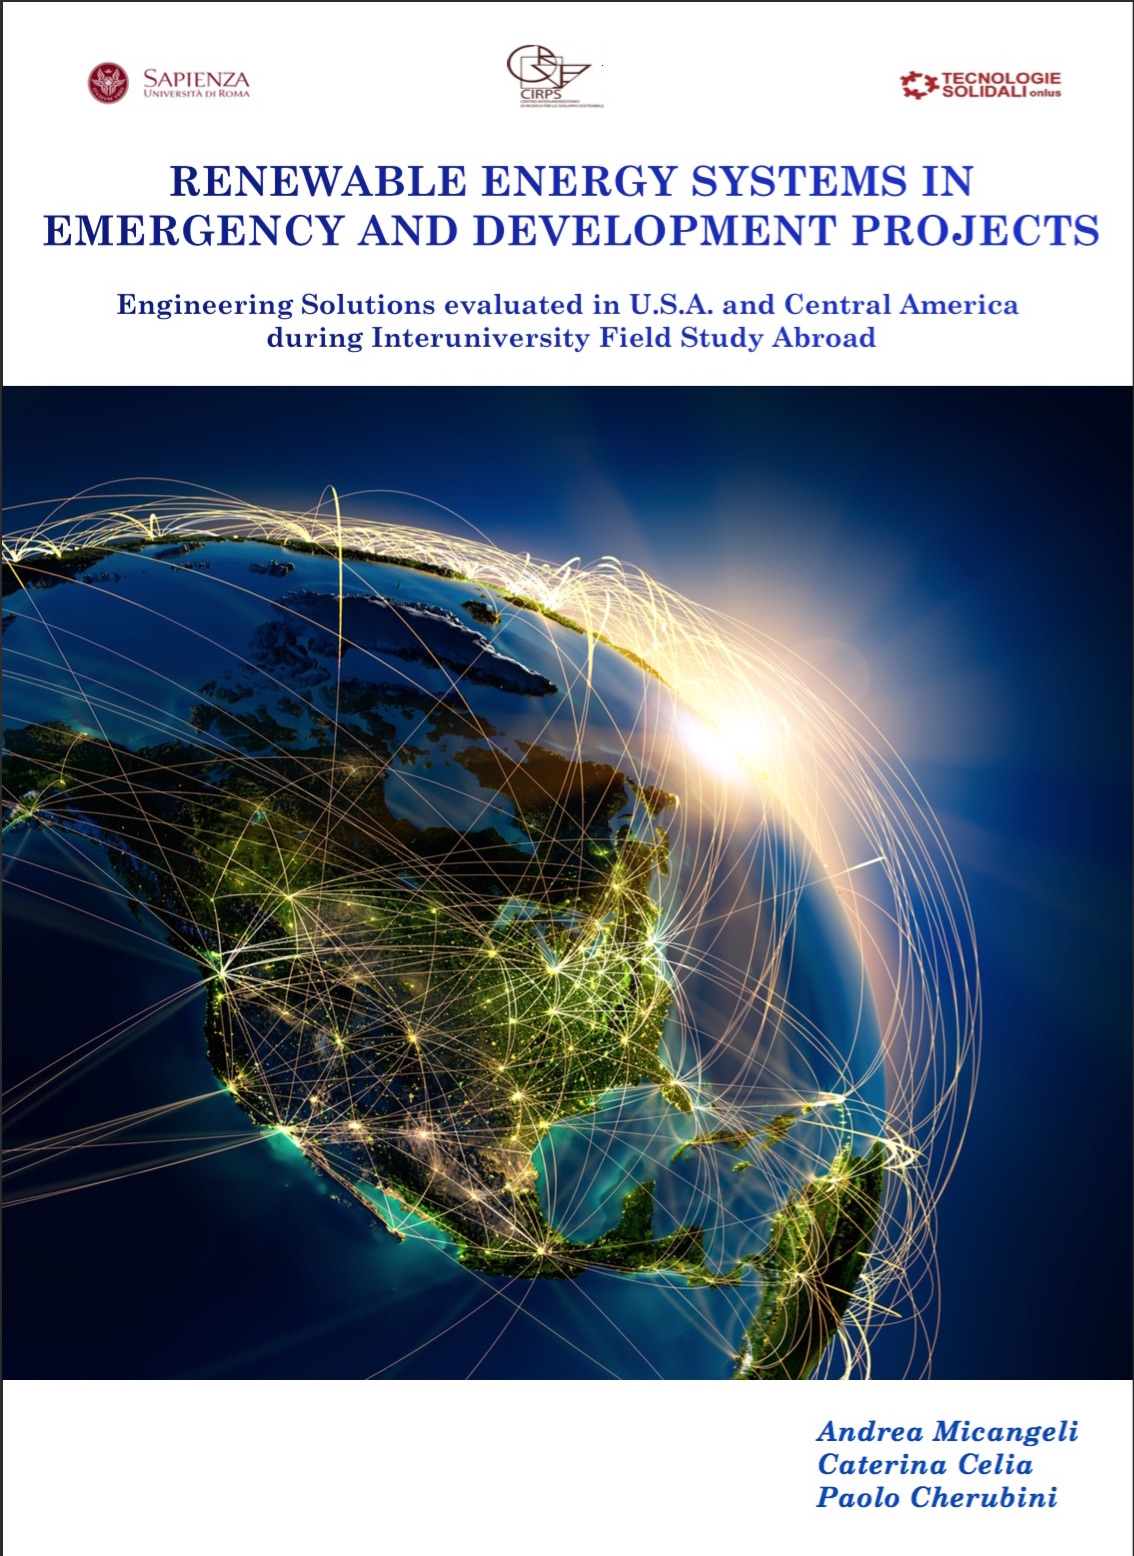 Copertina di Renewable energy systems in emergency and development projects. Engineering solutions evaluated in Central America during interuniversity field study abroad